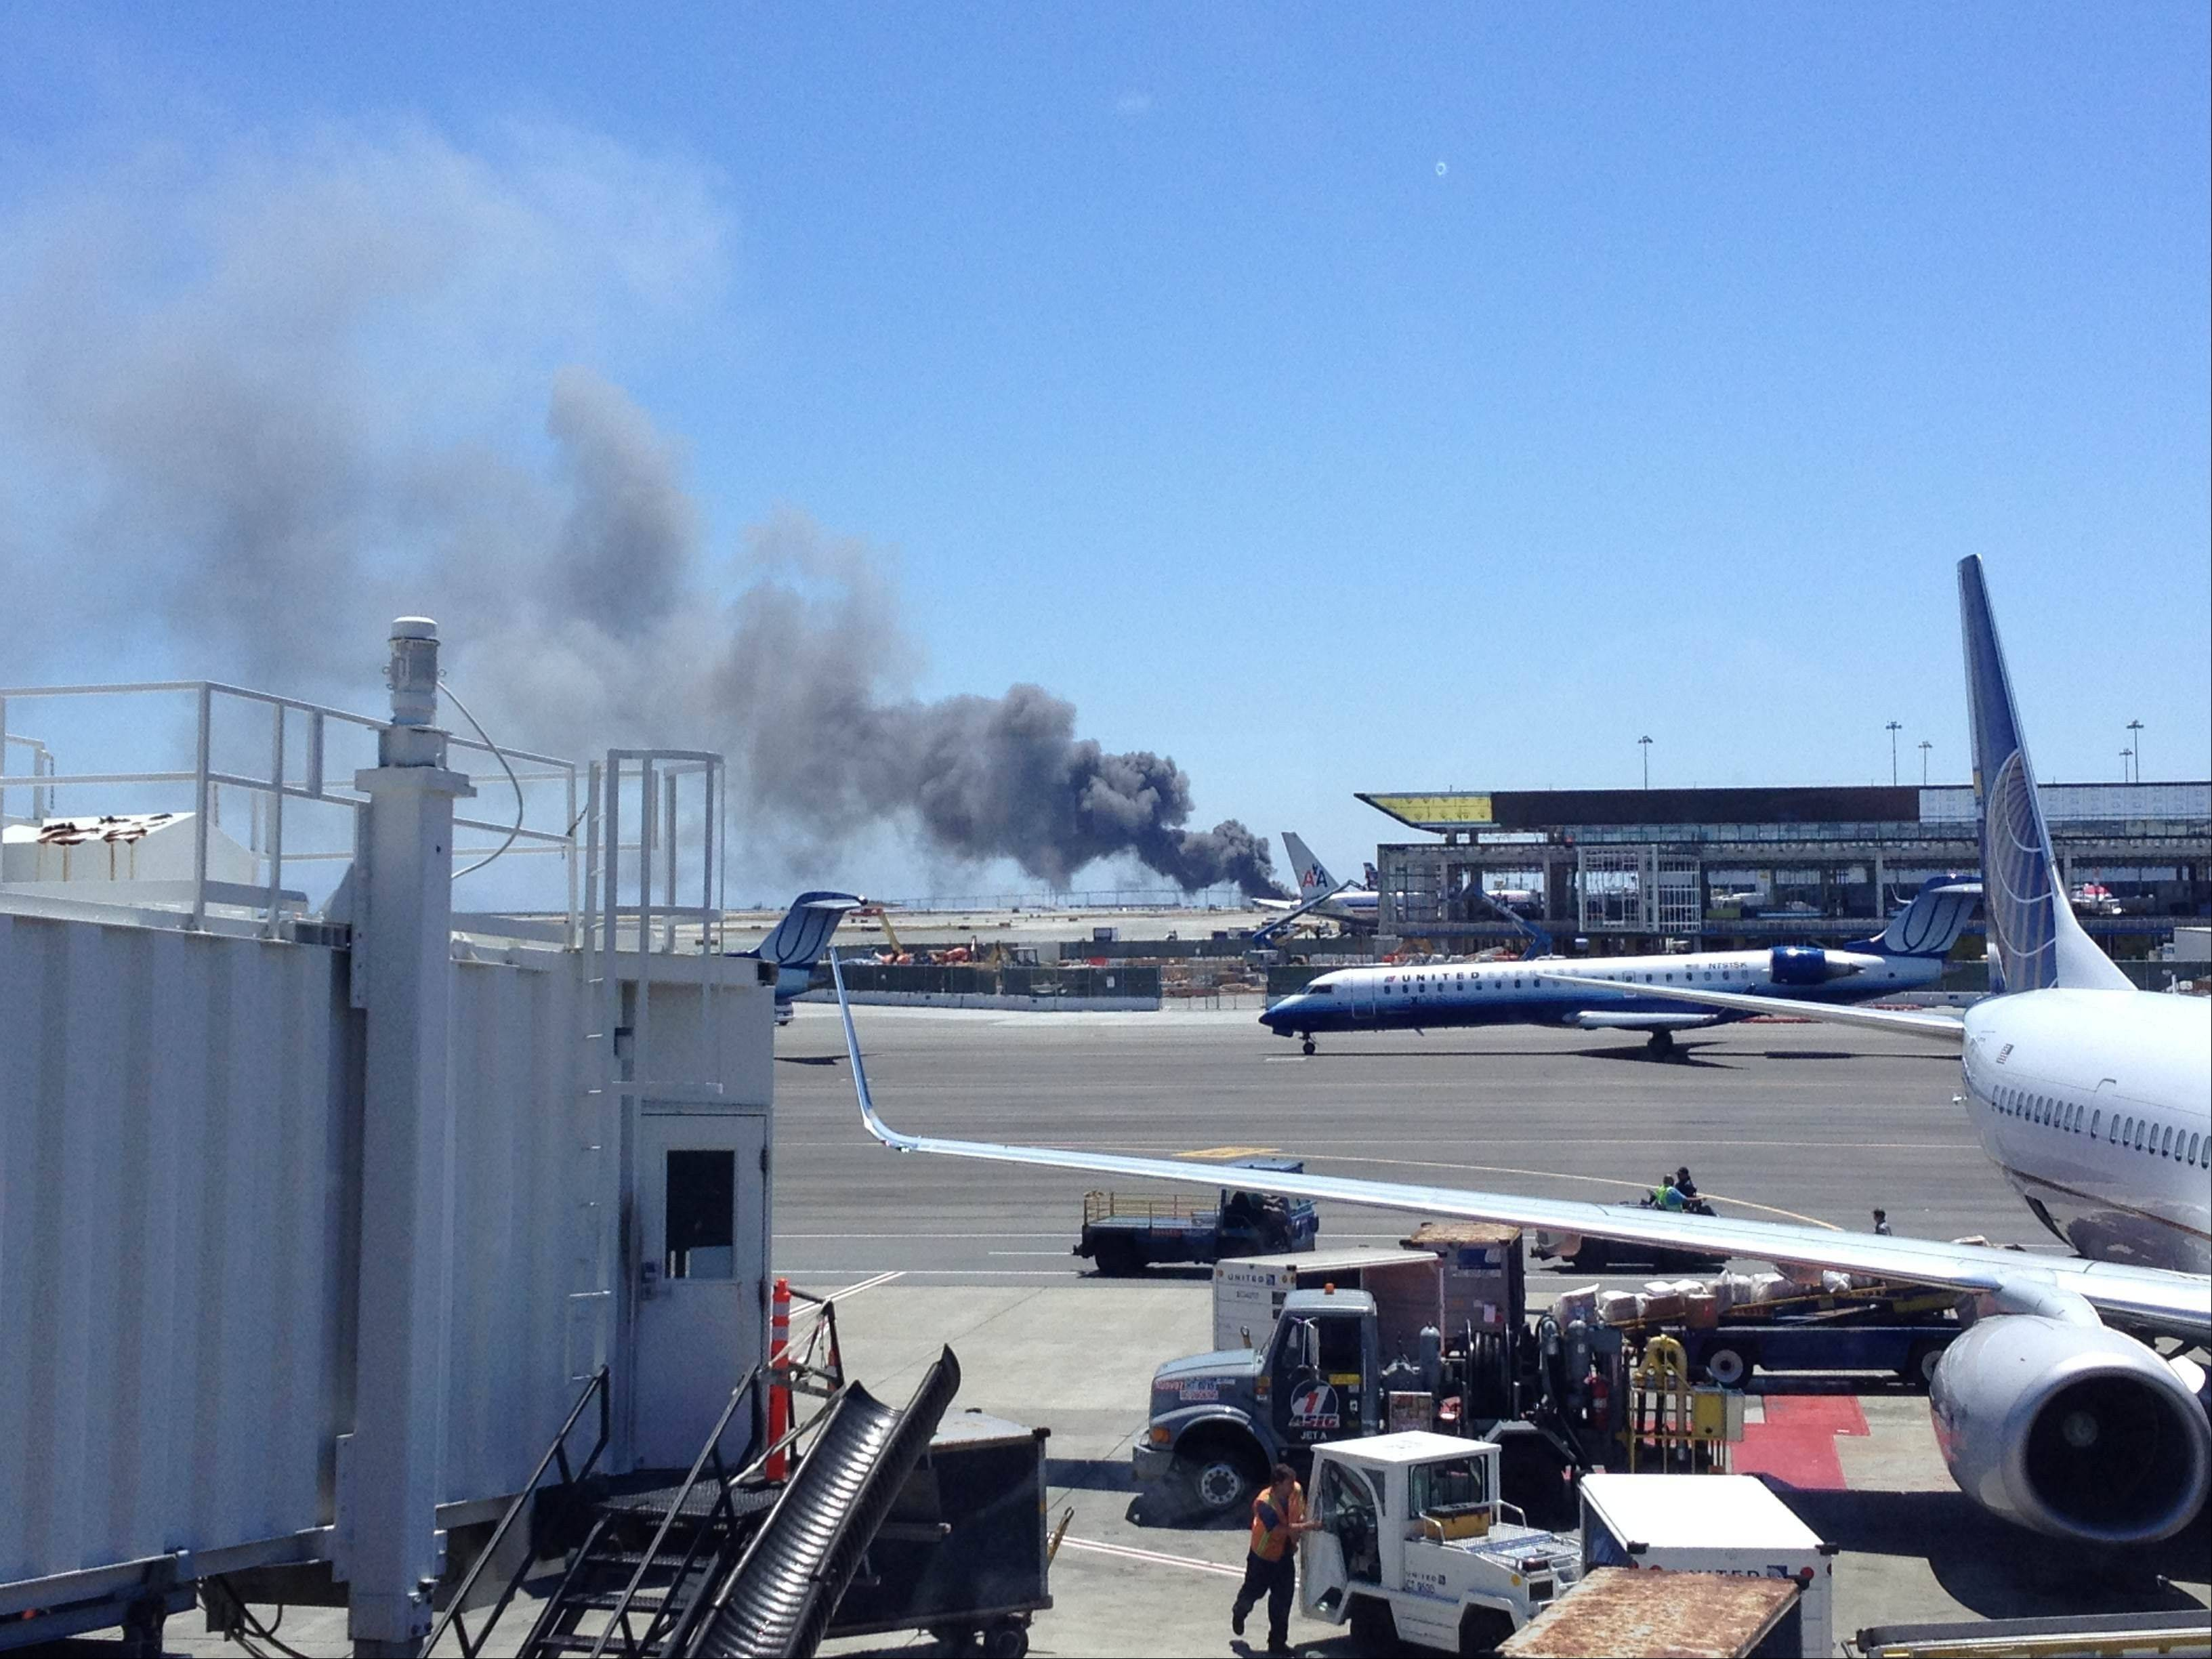 This photo provided by Zach Custer shows smoke rising from what a federal aviation official says was an Asiana Airlines flight crashing while landing at San Francisco airport on Saturday, July 6, 2013. It was not immediately known whether there were any injuries.